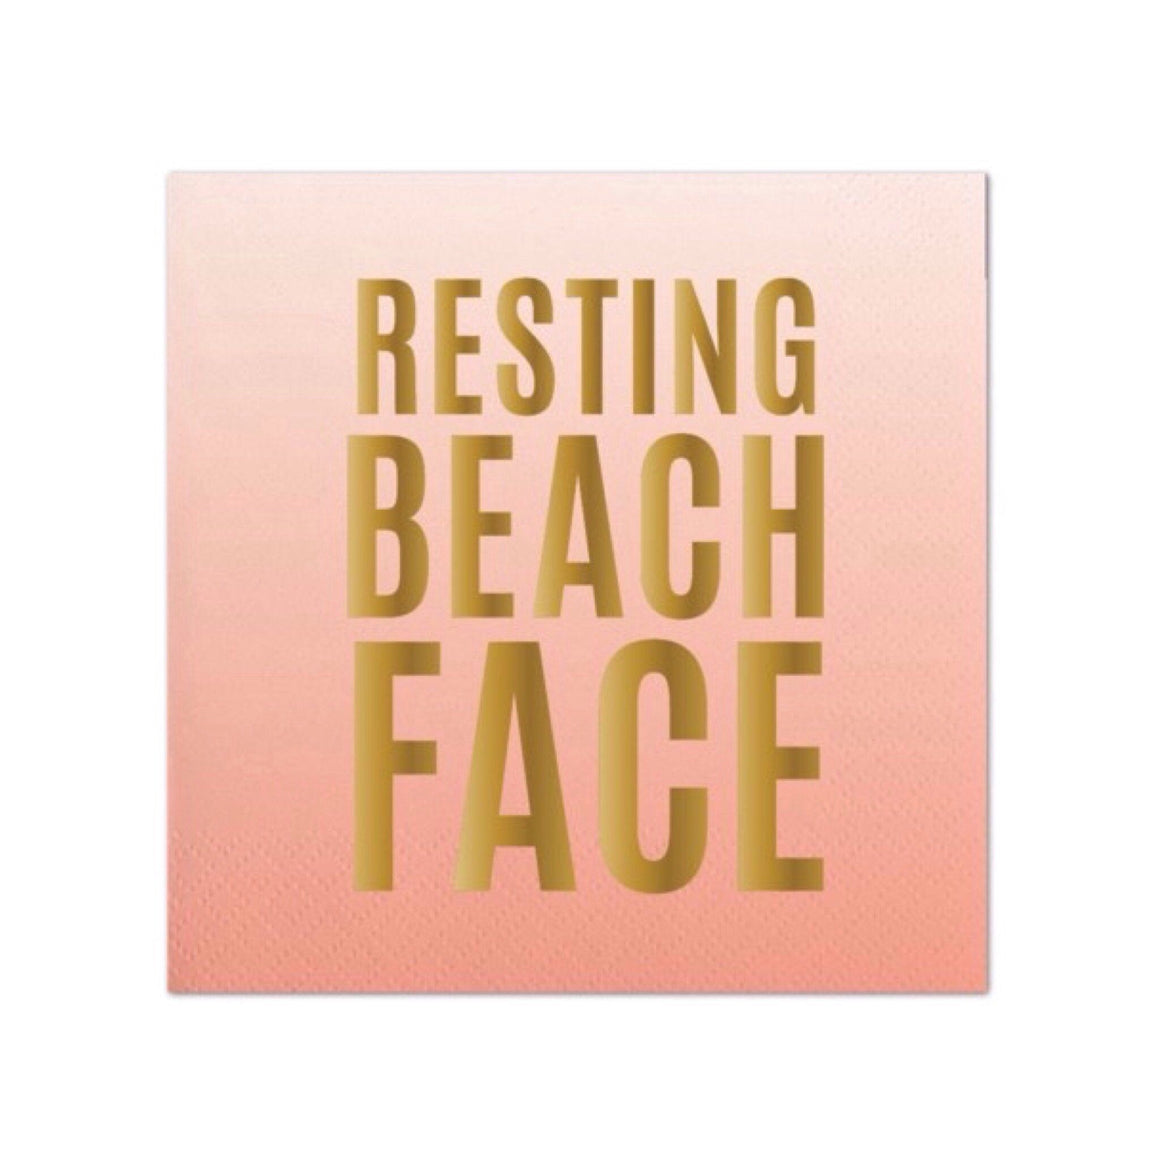 NAPKINS - COCKTAIL RESTING BEACH FACE